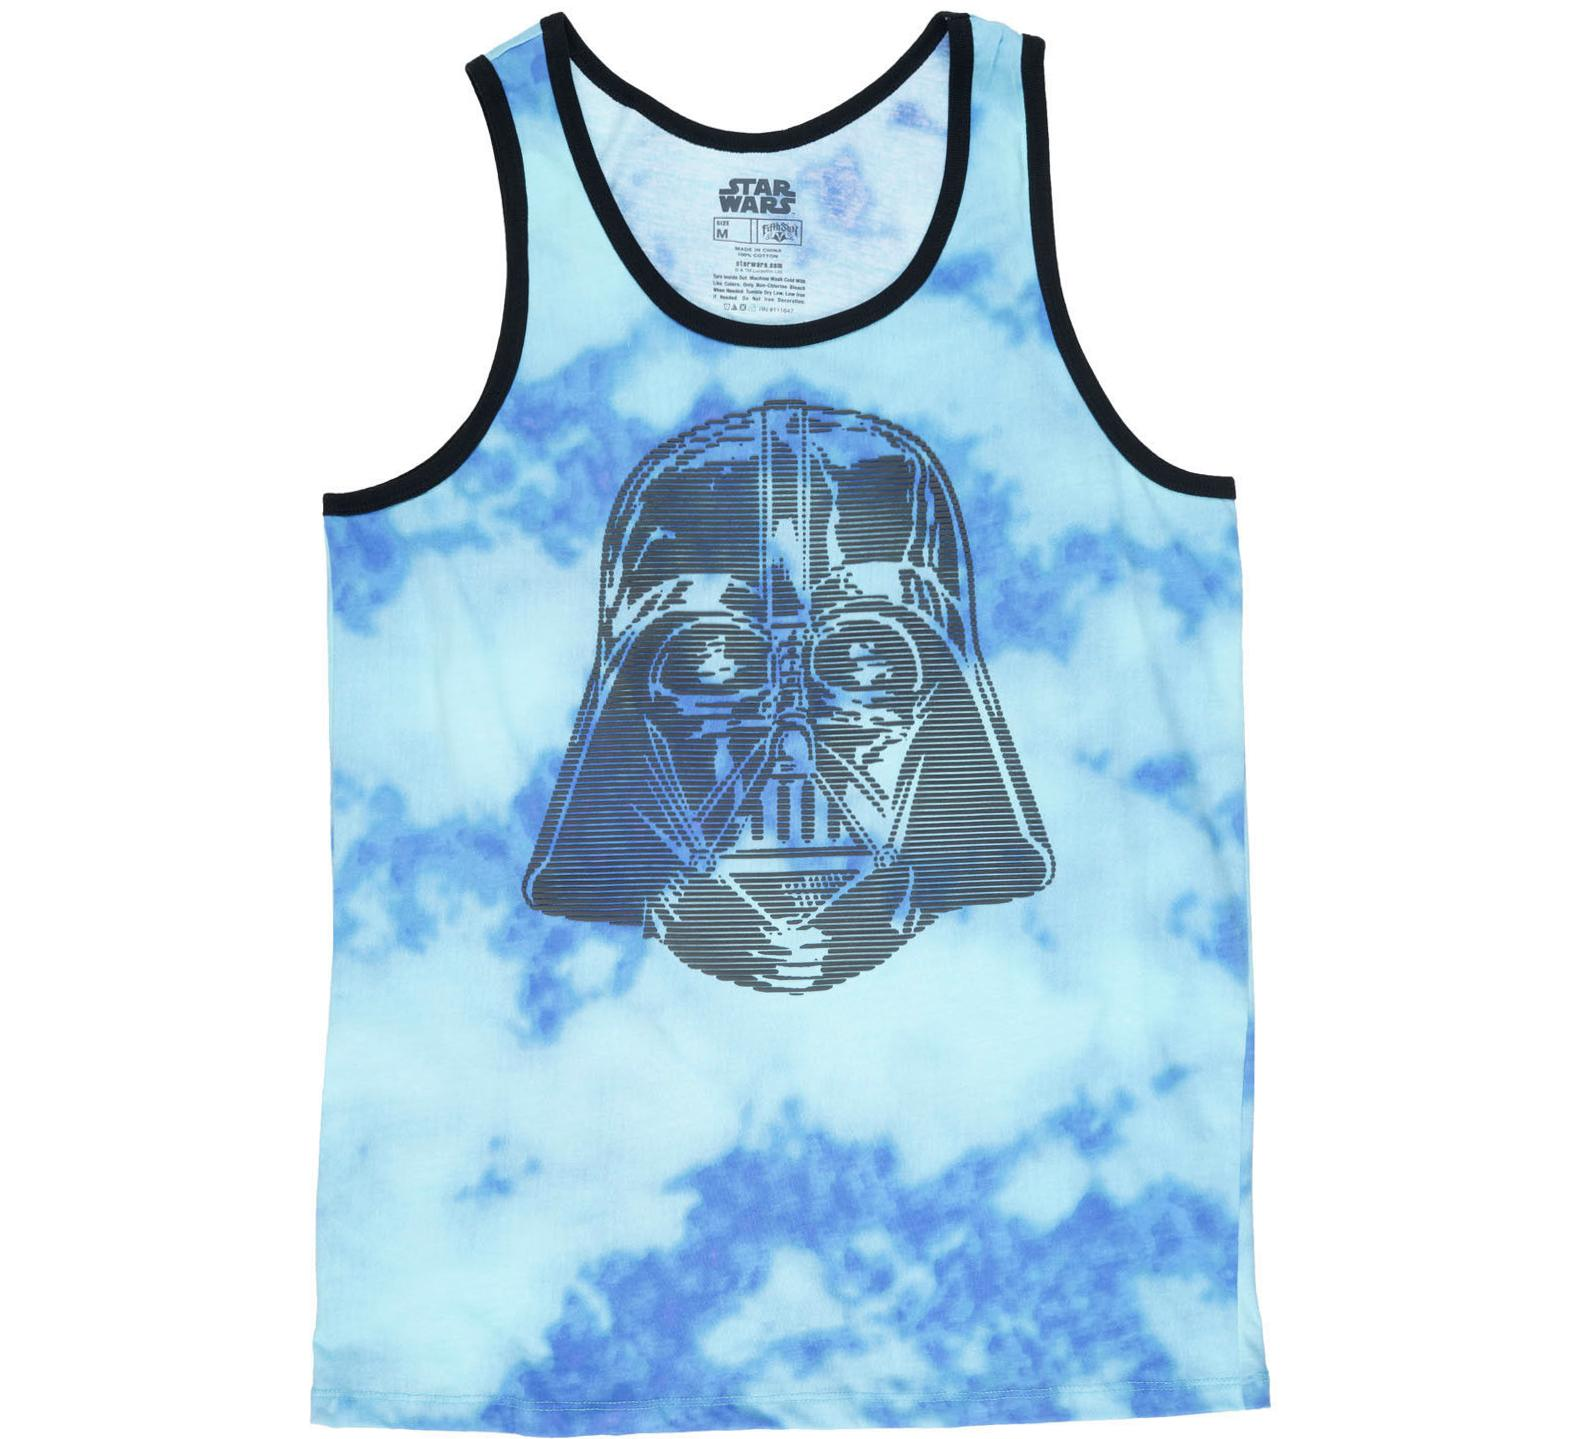 Star Wars Vader Retro Tank Top